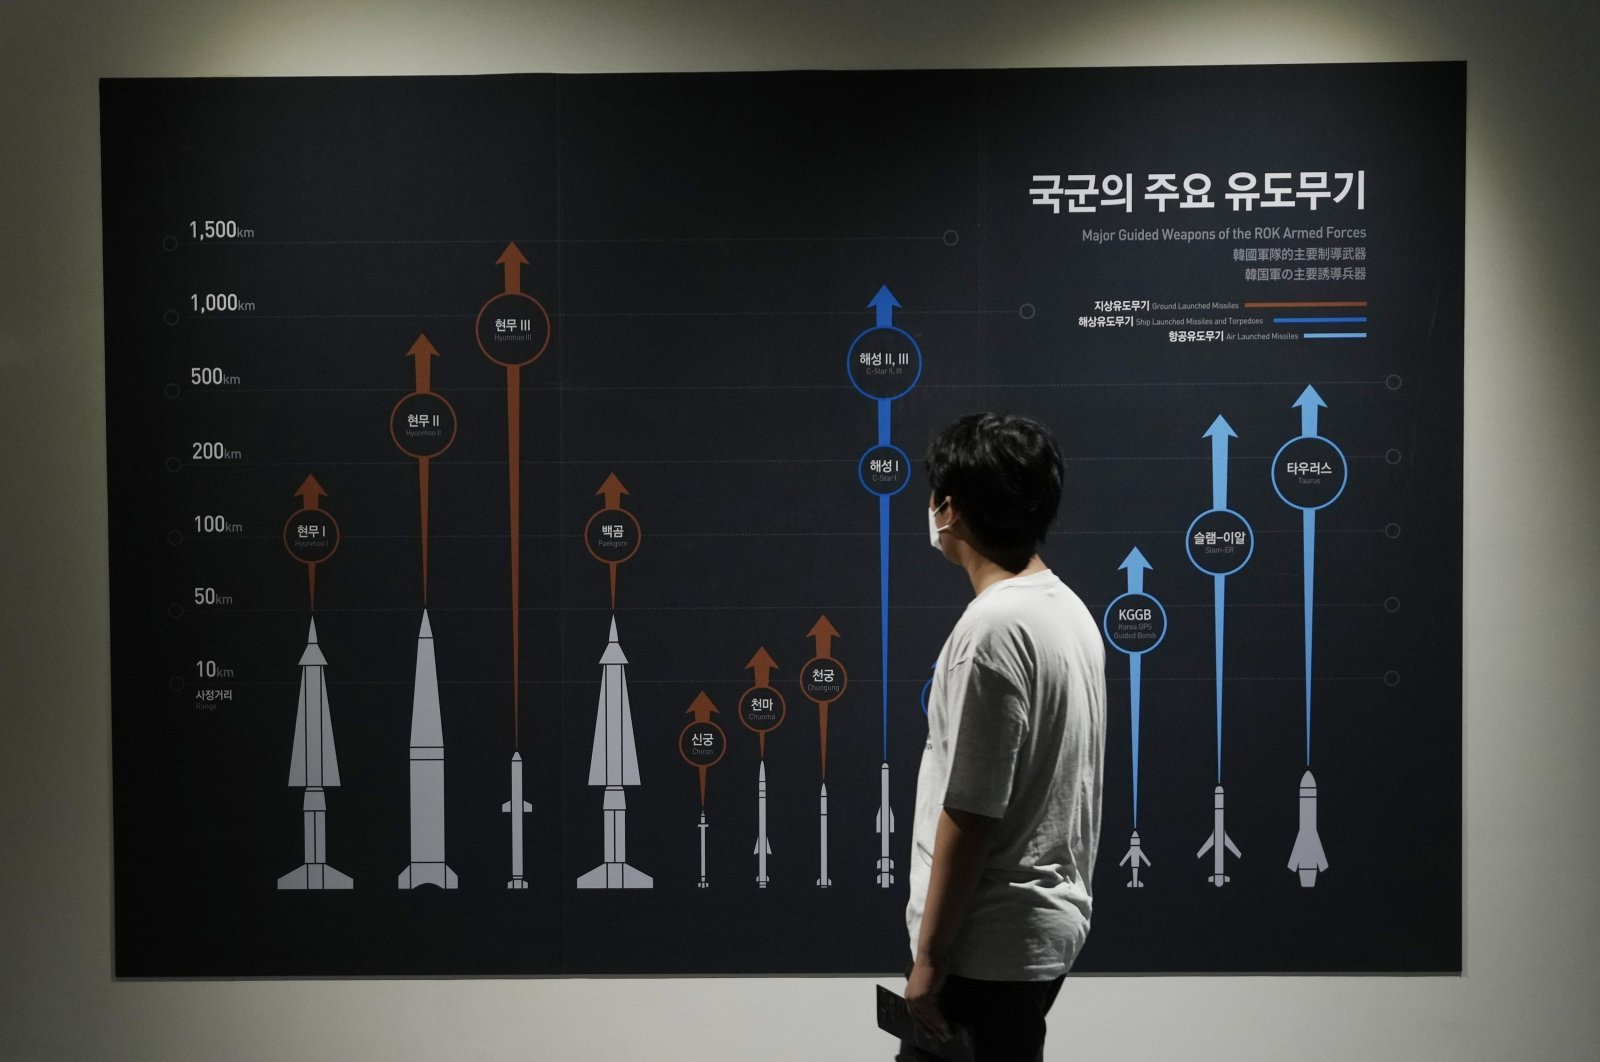 A visitor watches a display board showing major guide weapons of the South Korean armed forces at the Korea War Memorial Museum in Seoul, South Korea, July 23, 2021. (AP Photo)